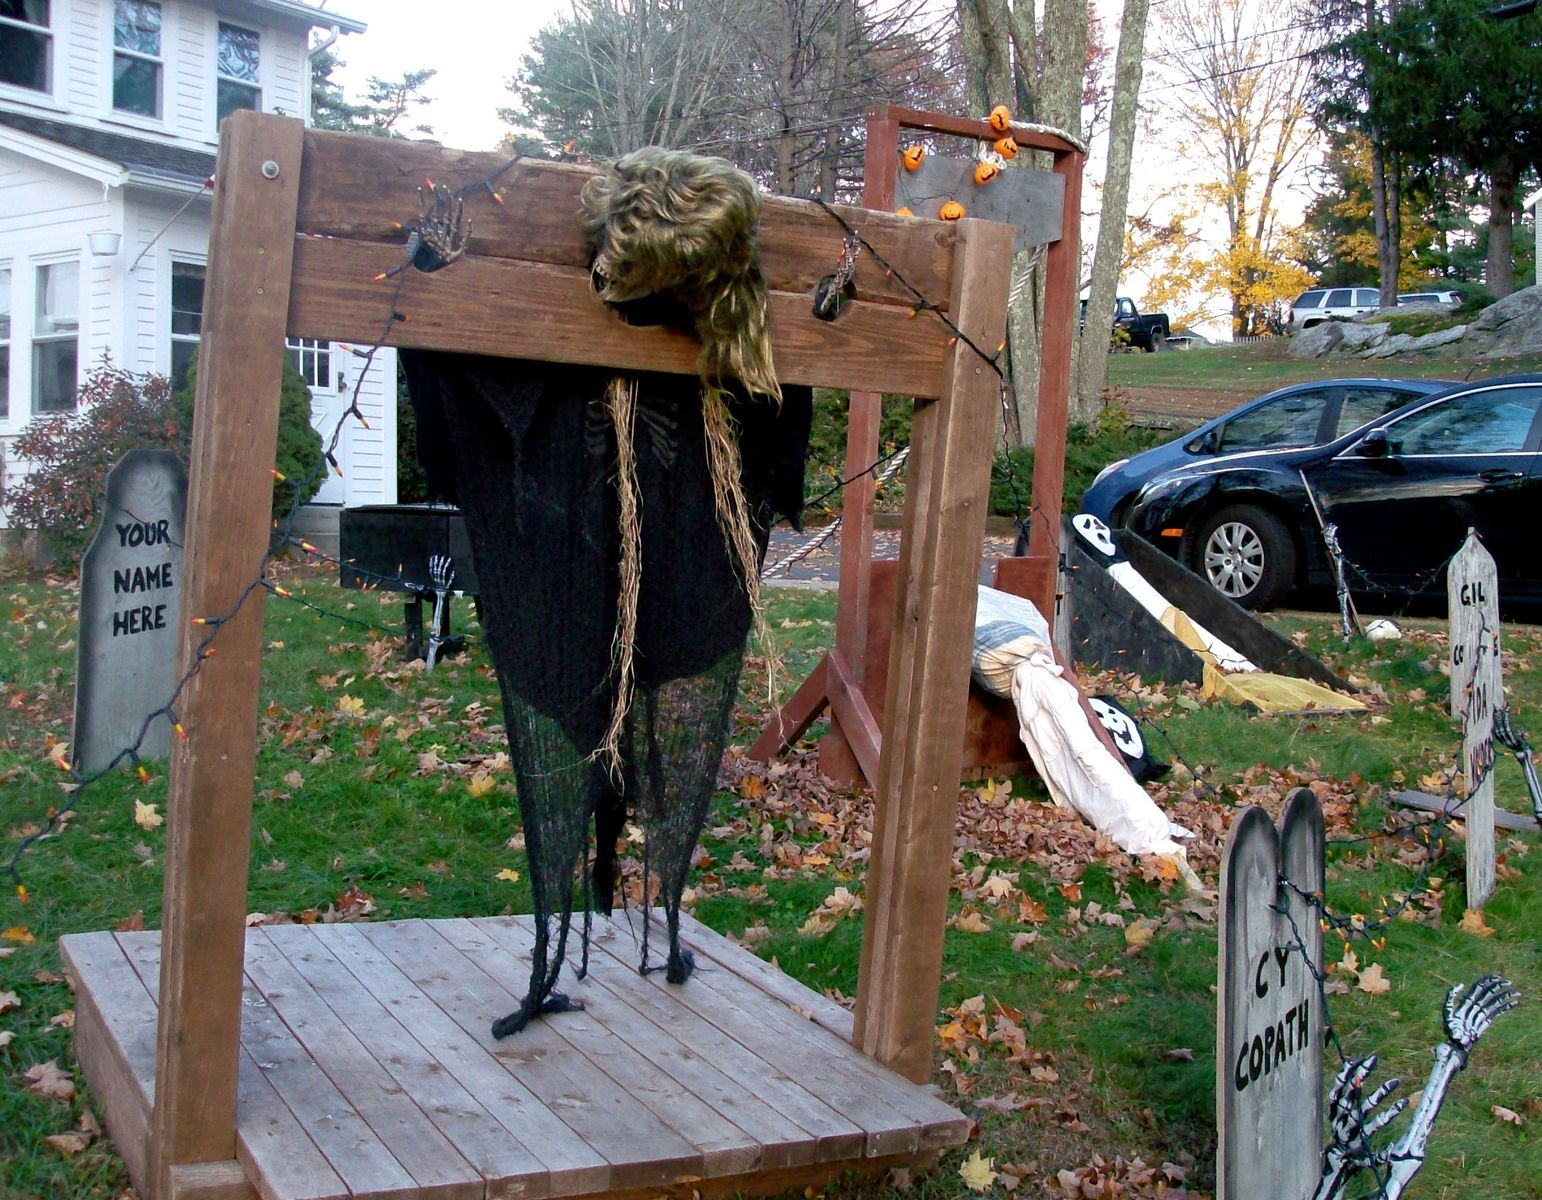 Fun Bedroom Decorating Ideas Hand Crafted Stage Amp Halloween Display Props By